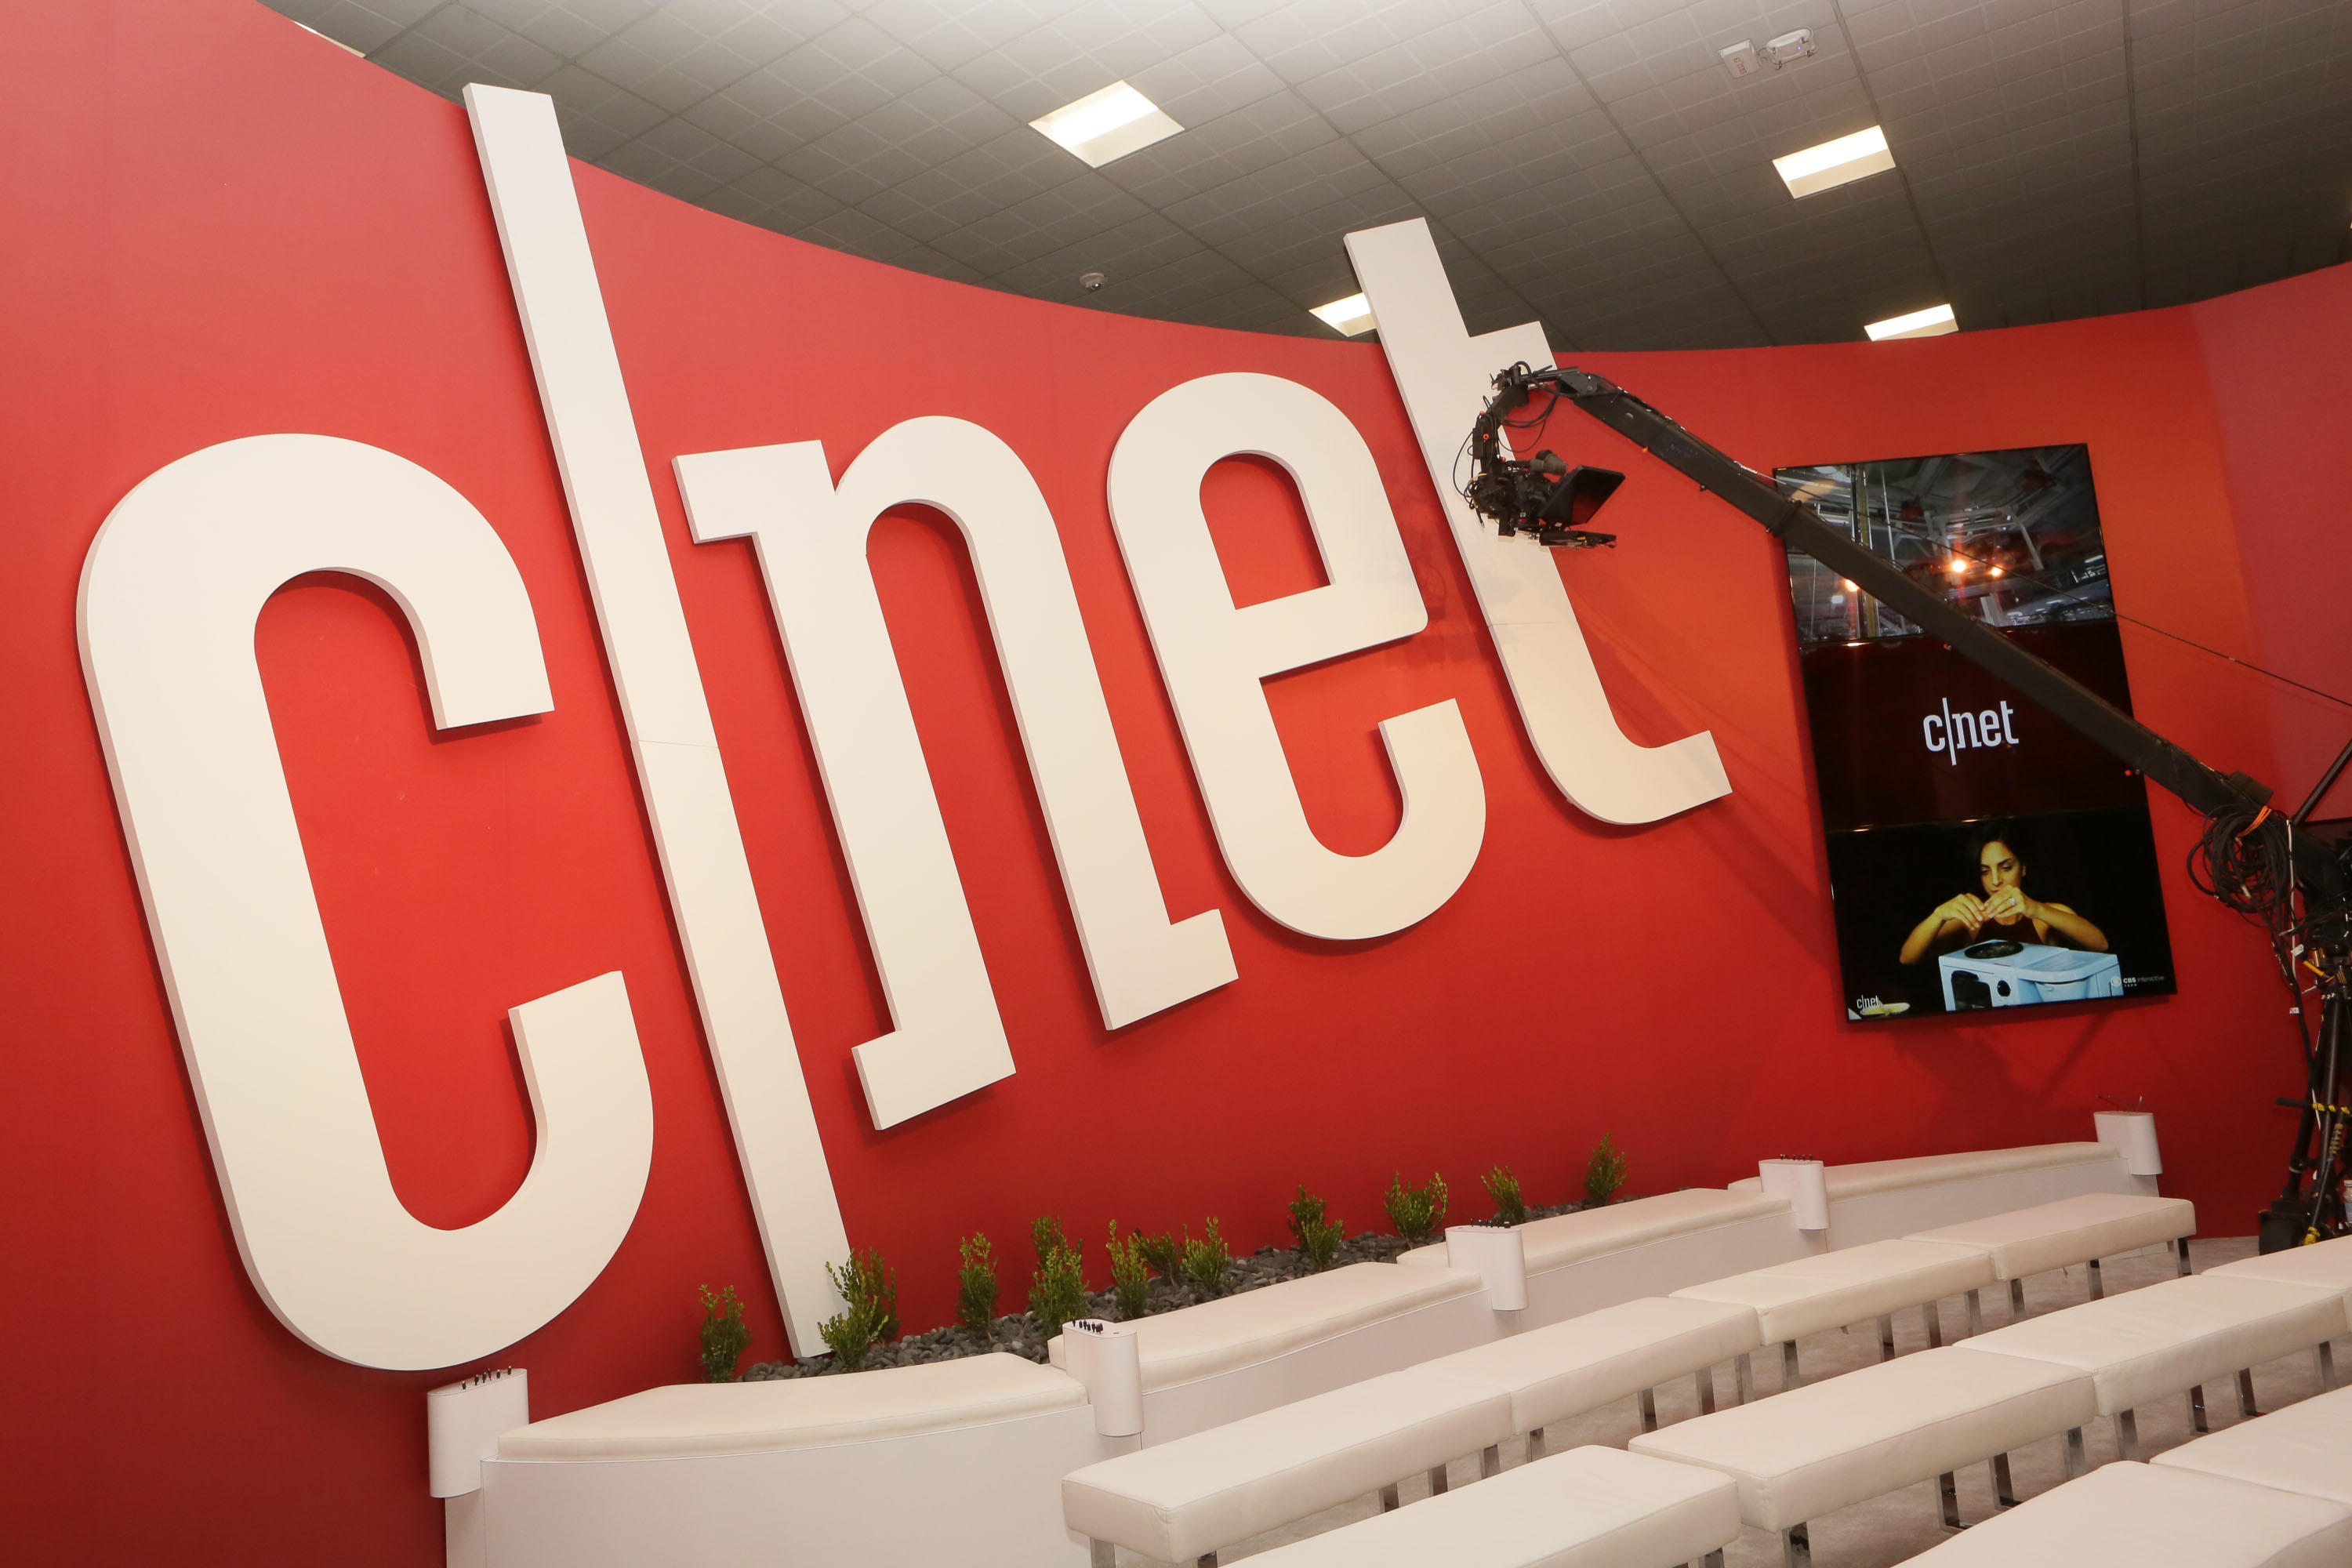 009-ces-2018-cnet-behind-the-scenes